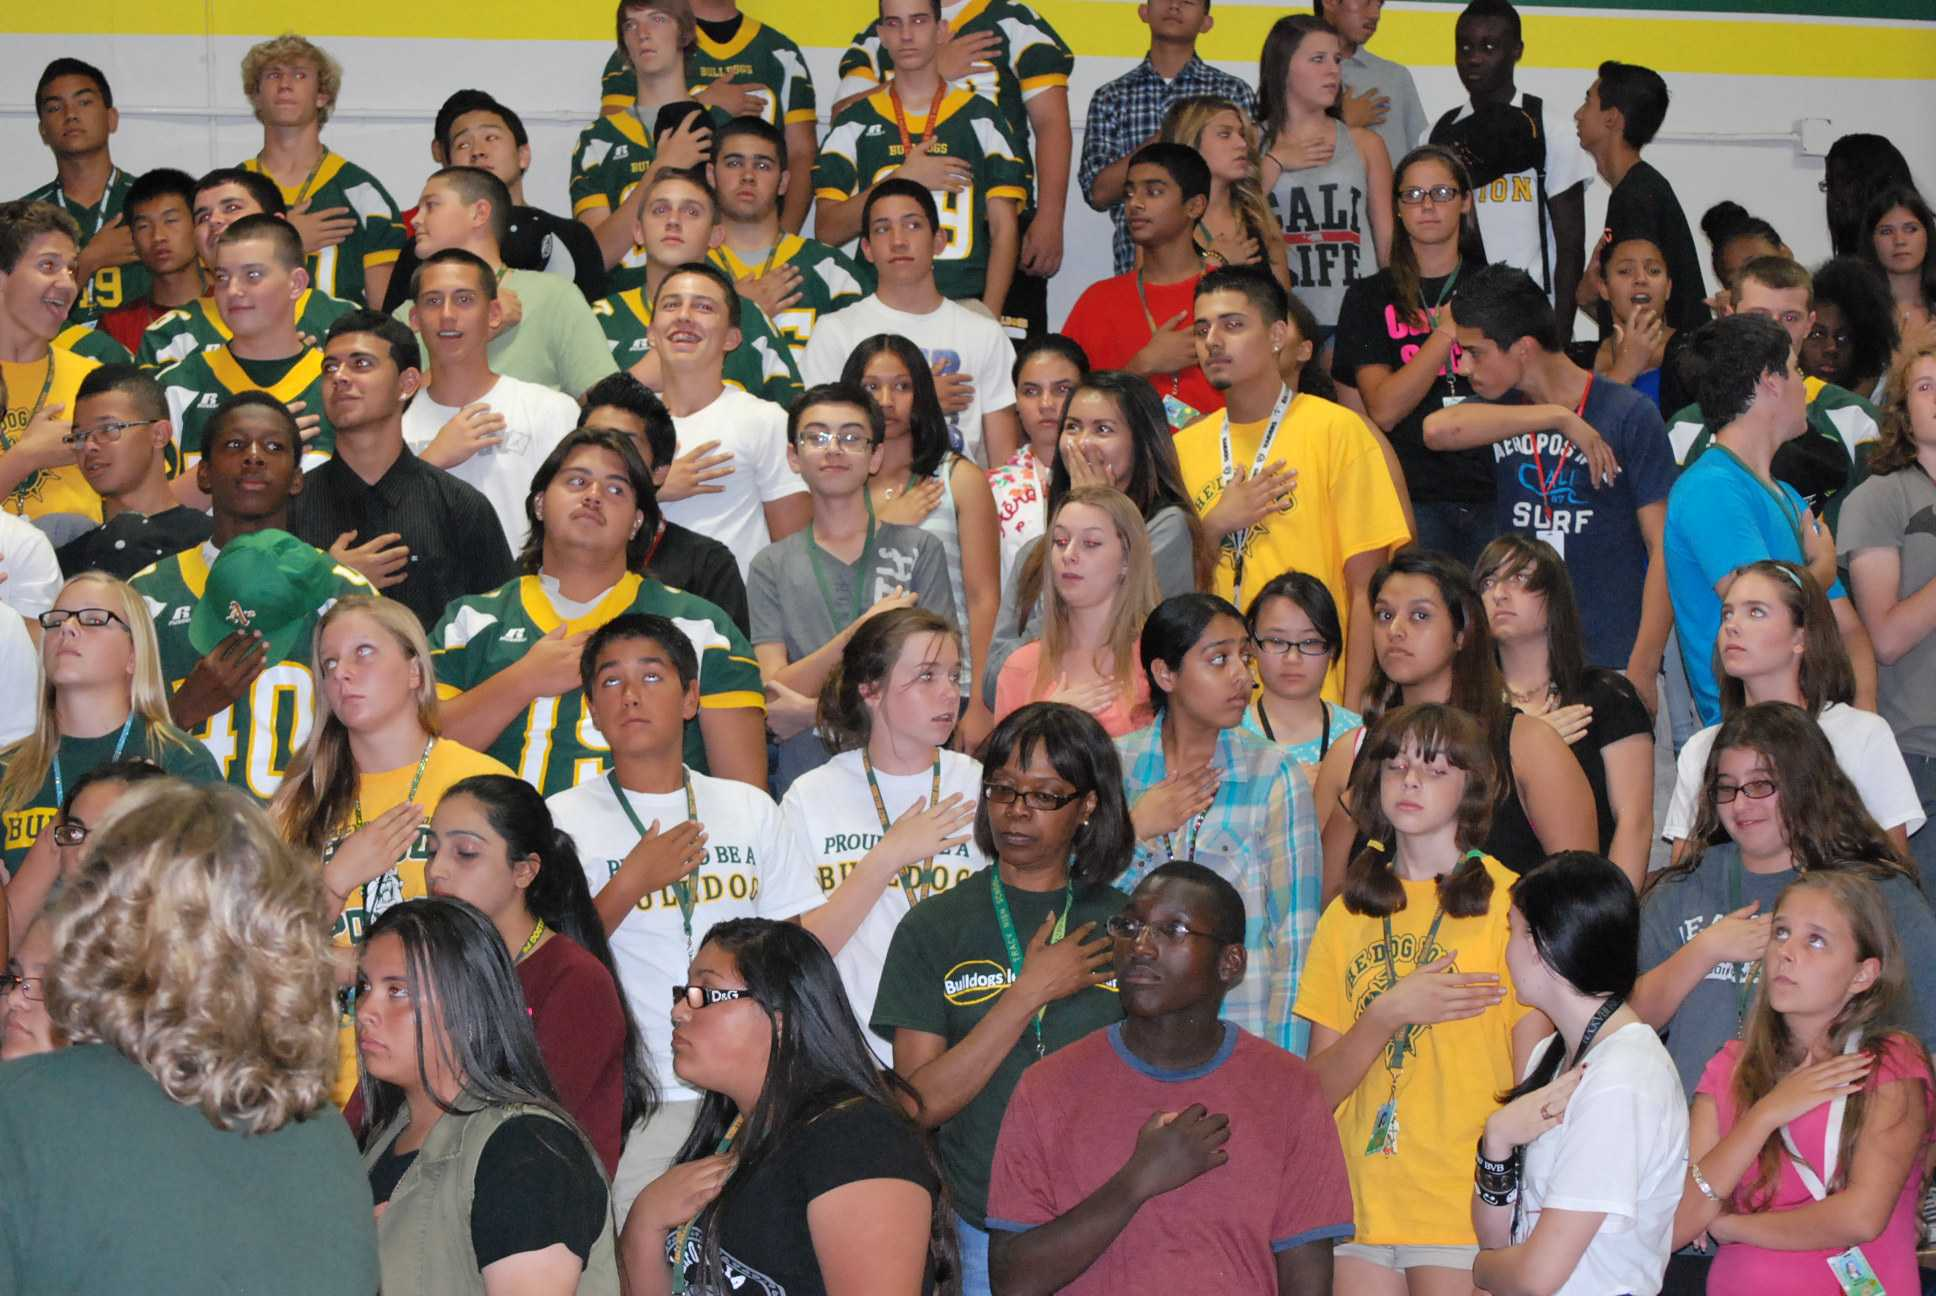 Students enjoy the back to school rally.